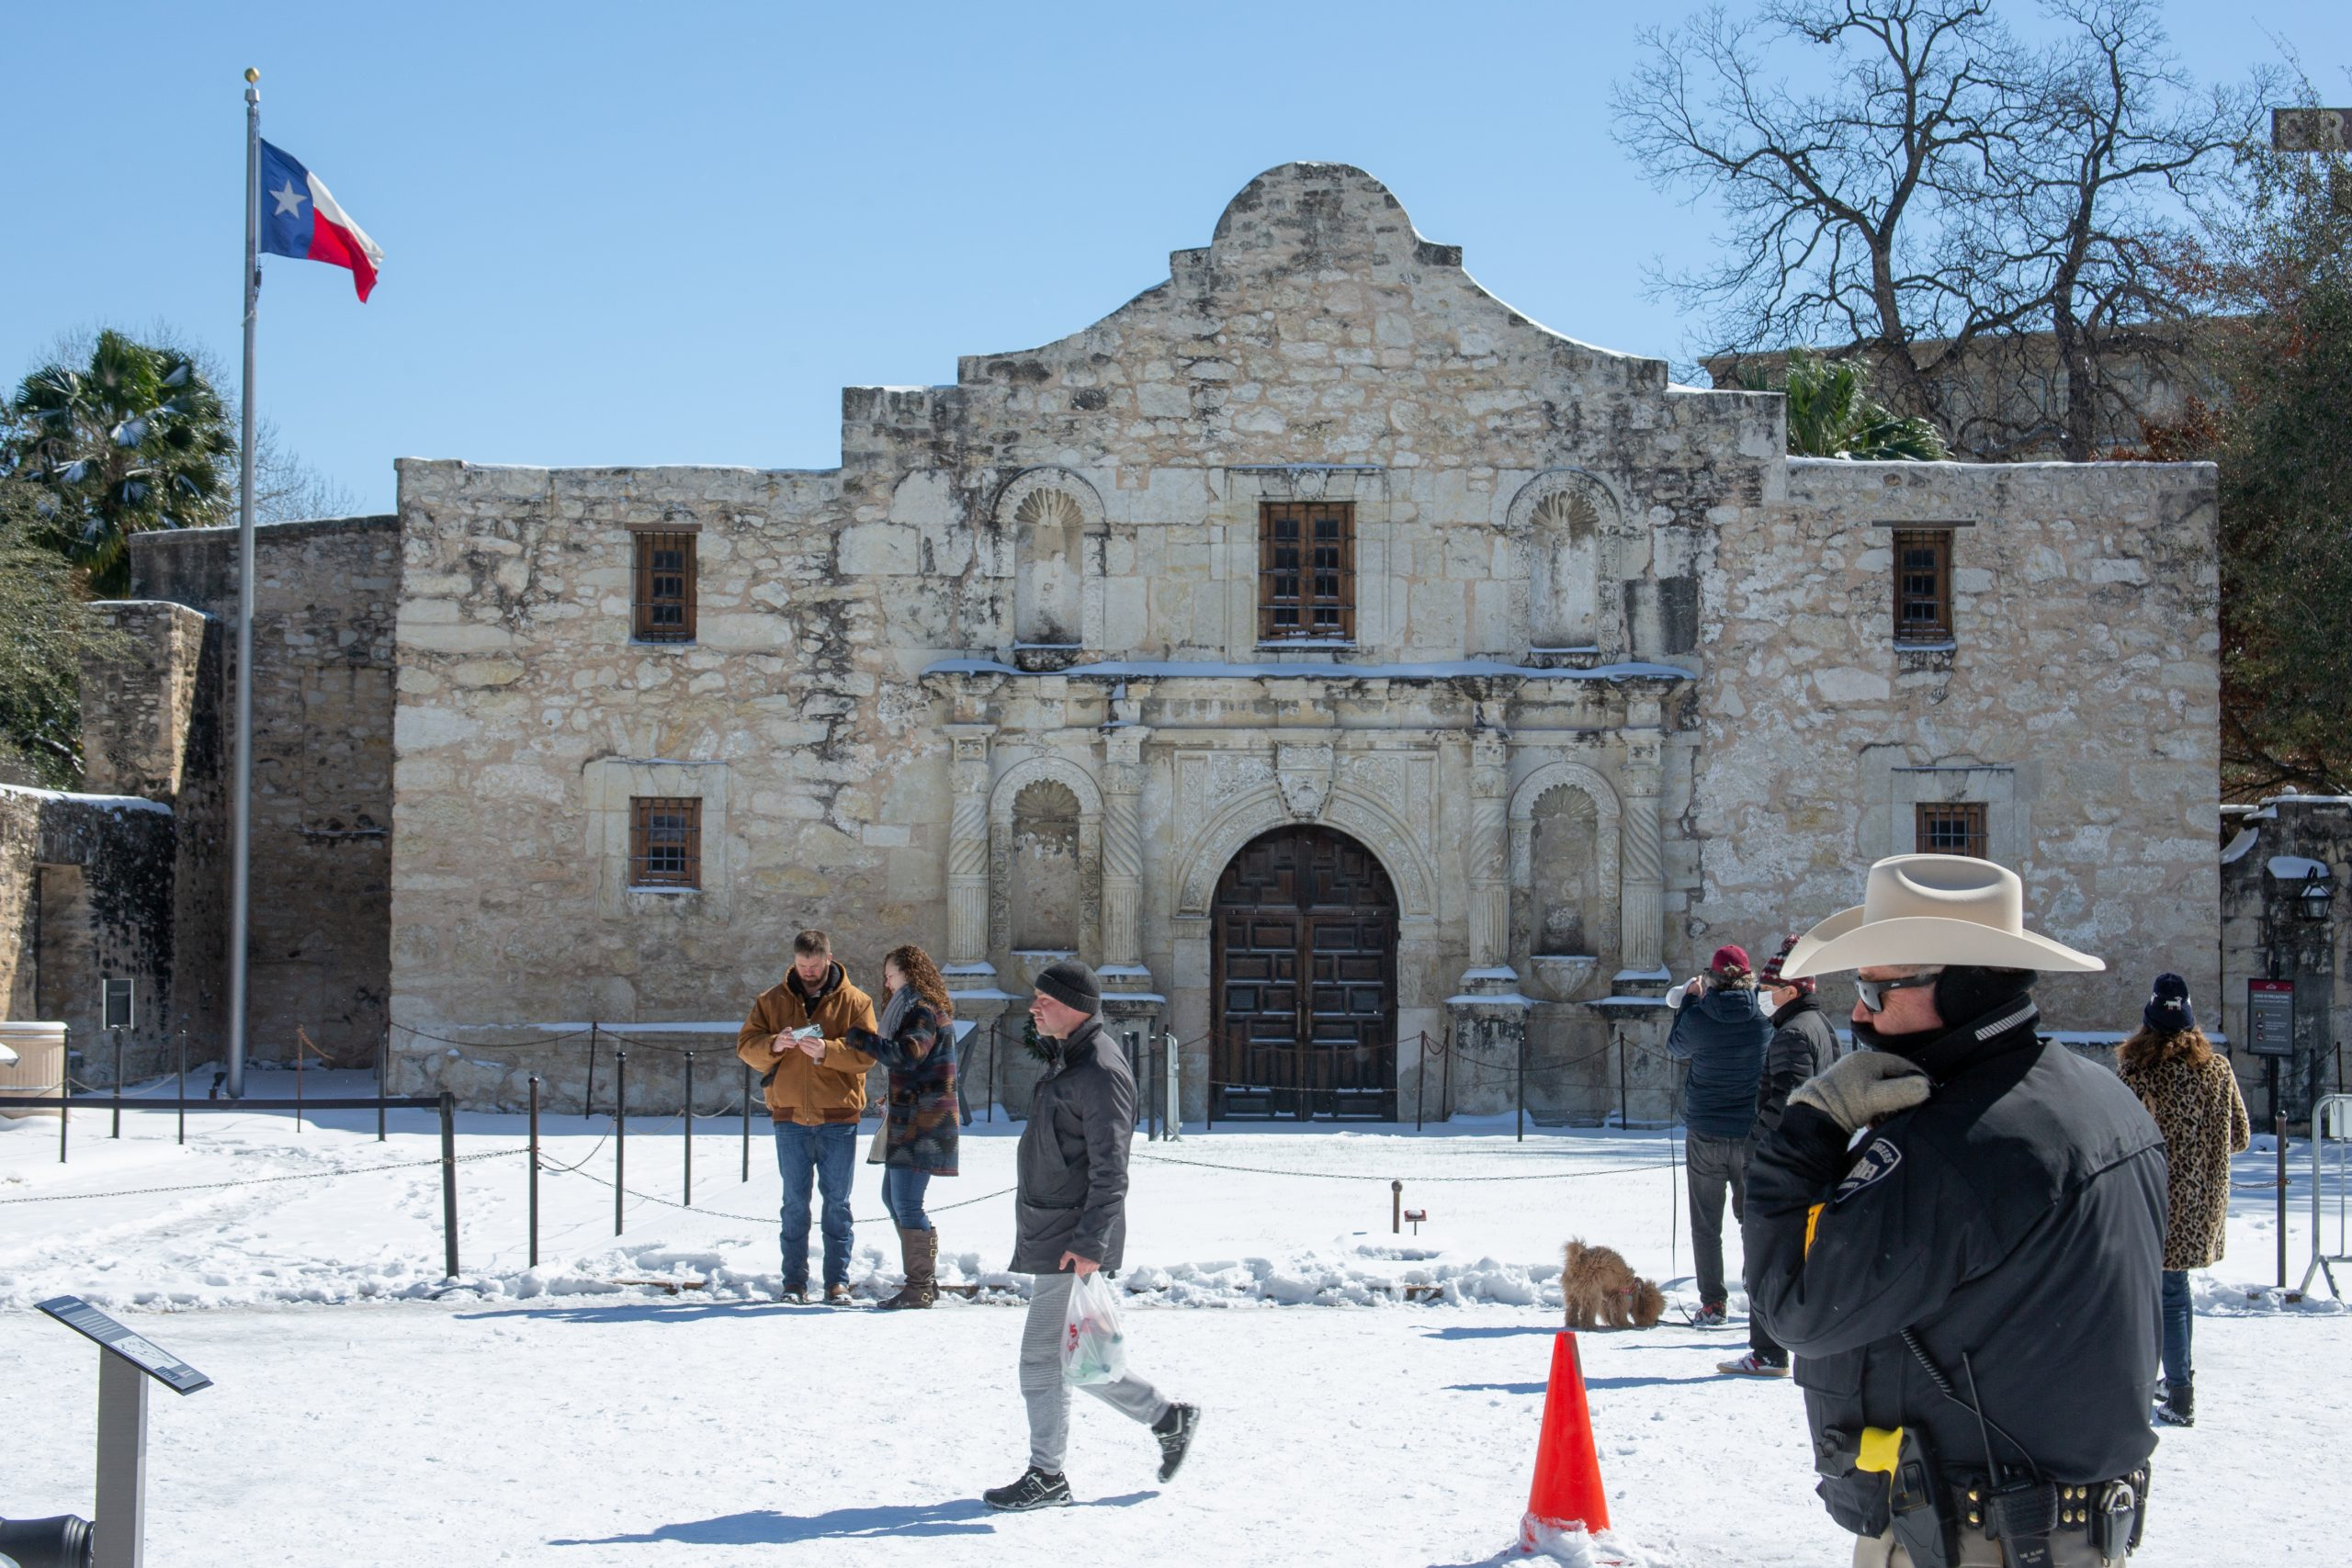 Visitors at Alamo Plaza take photographs in front of the snowy scene at the historic site.